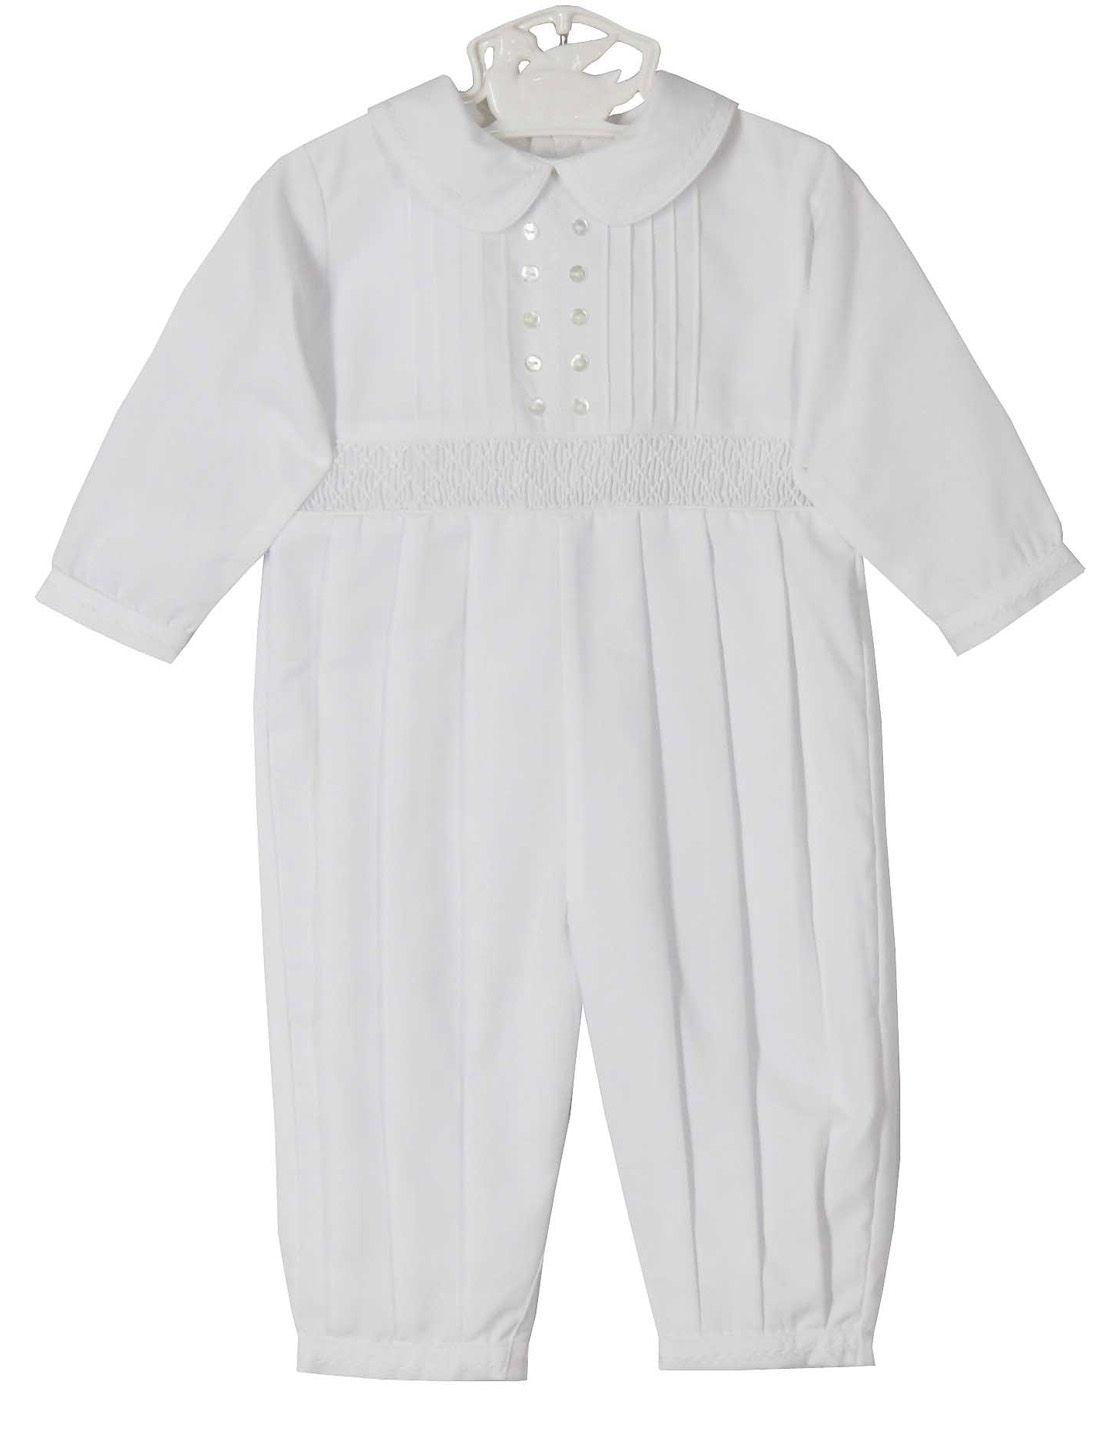 02b8932c8 NEW Sarah Louise White Smocked Romper with Pintucks and White ...